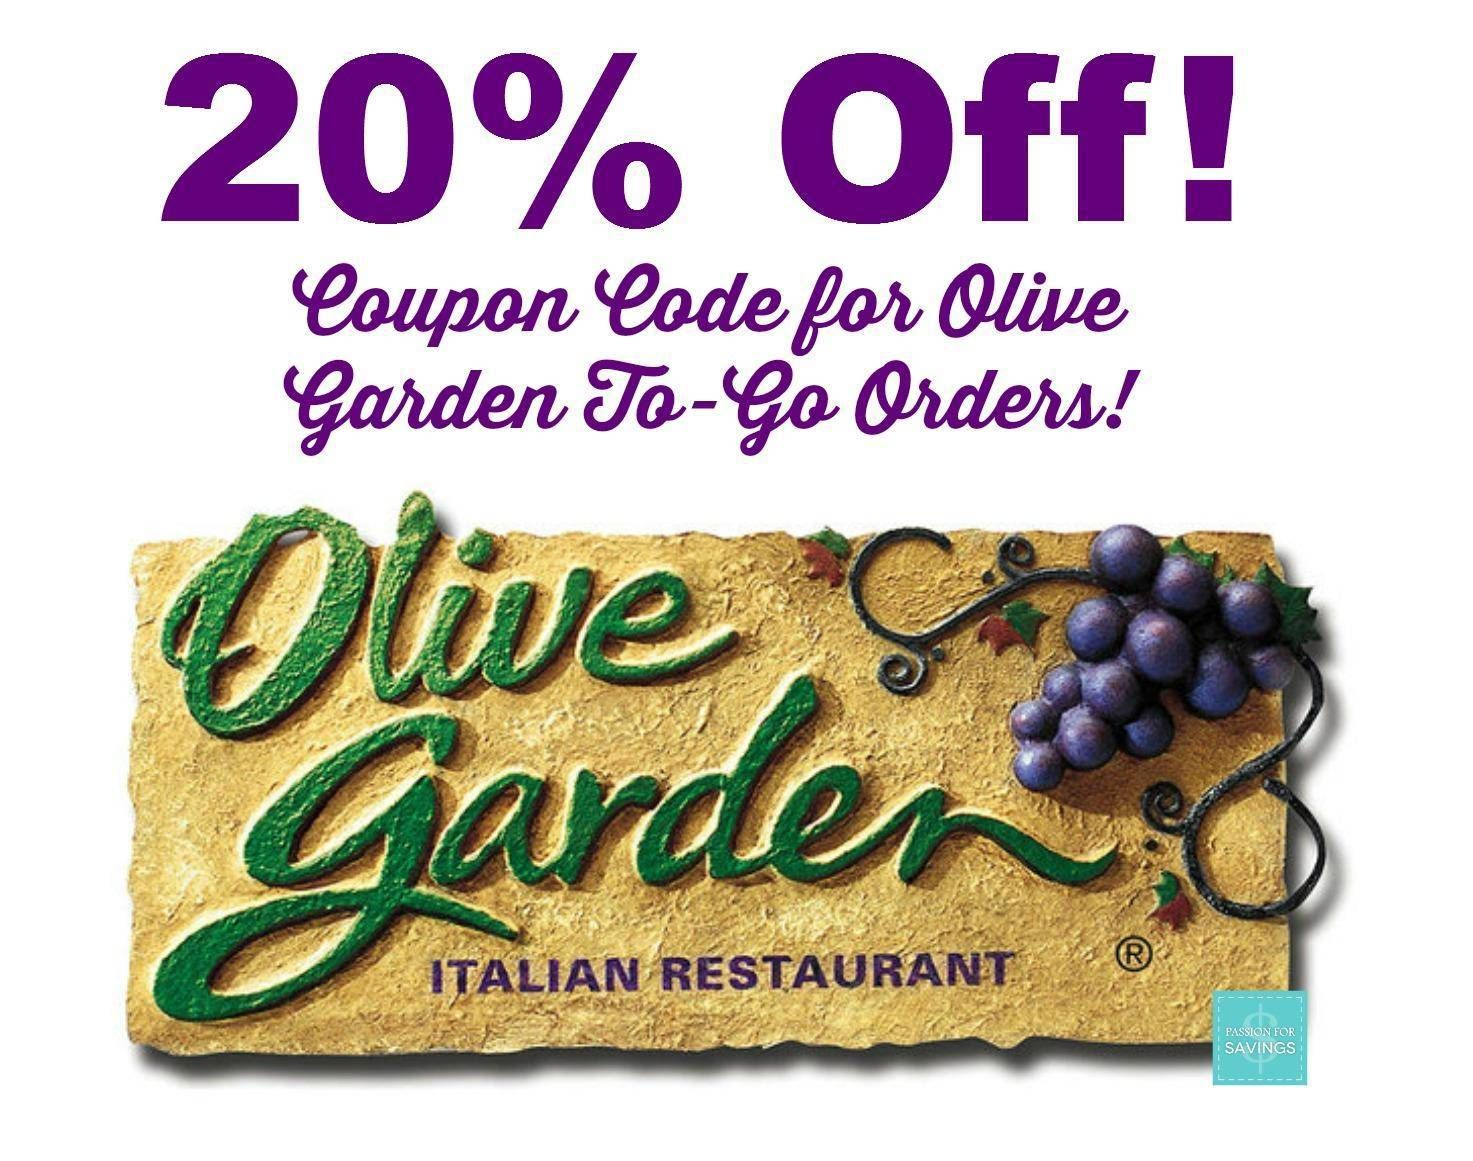 8 Pics Olive Garden Catering Coupons And Description in